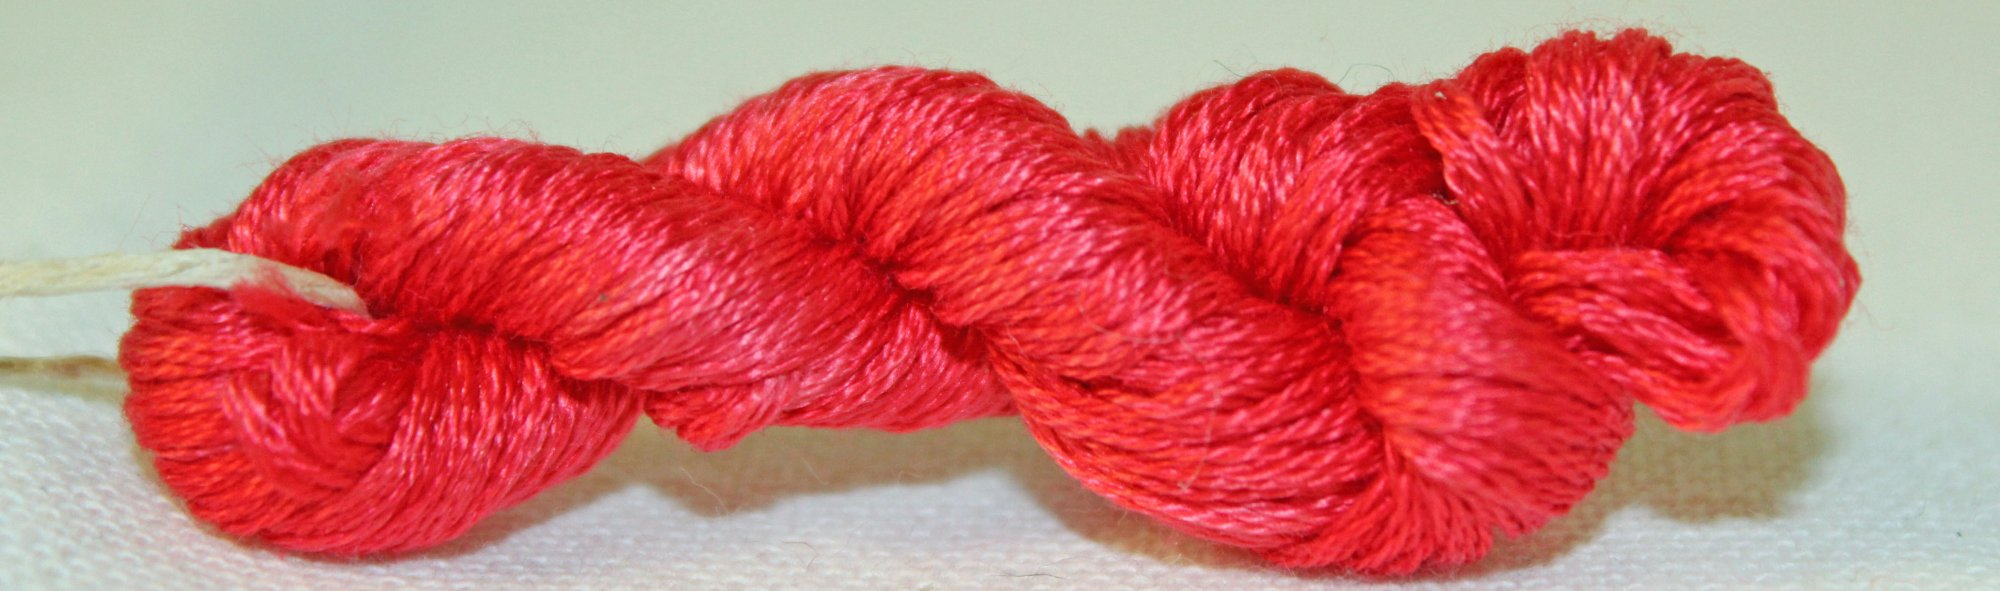 Lipstick- Hand-dyed Embroidery Floss